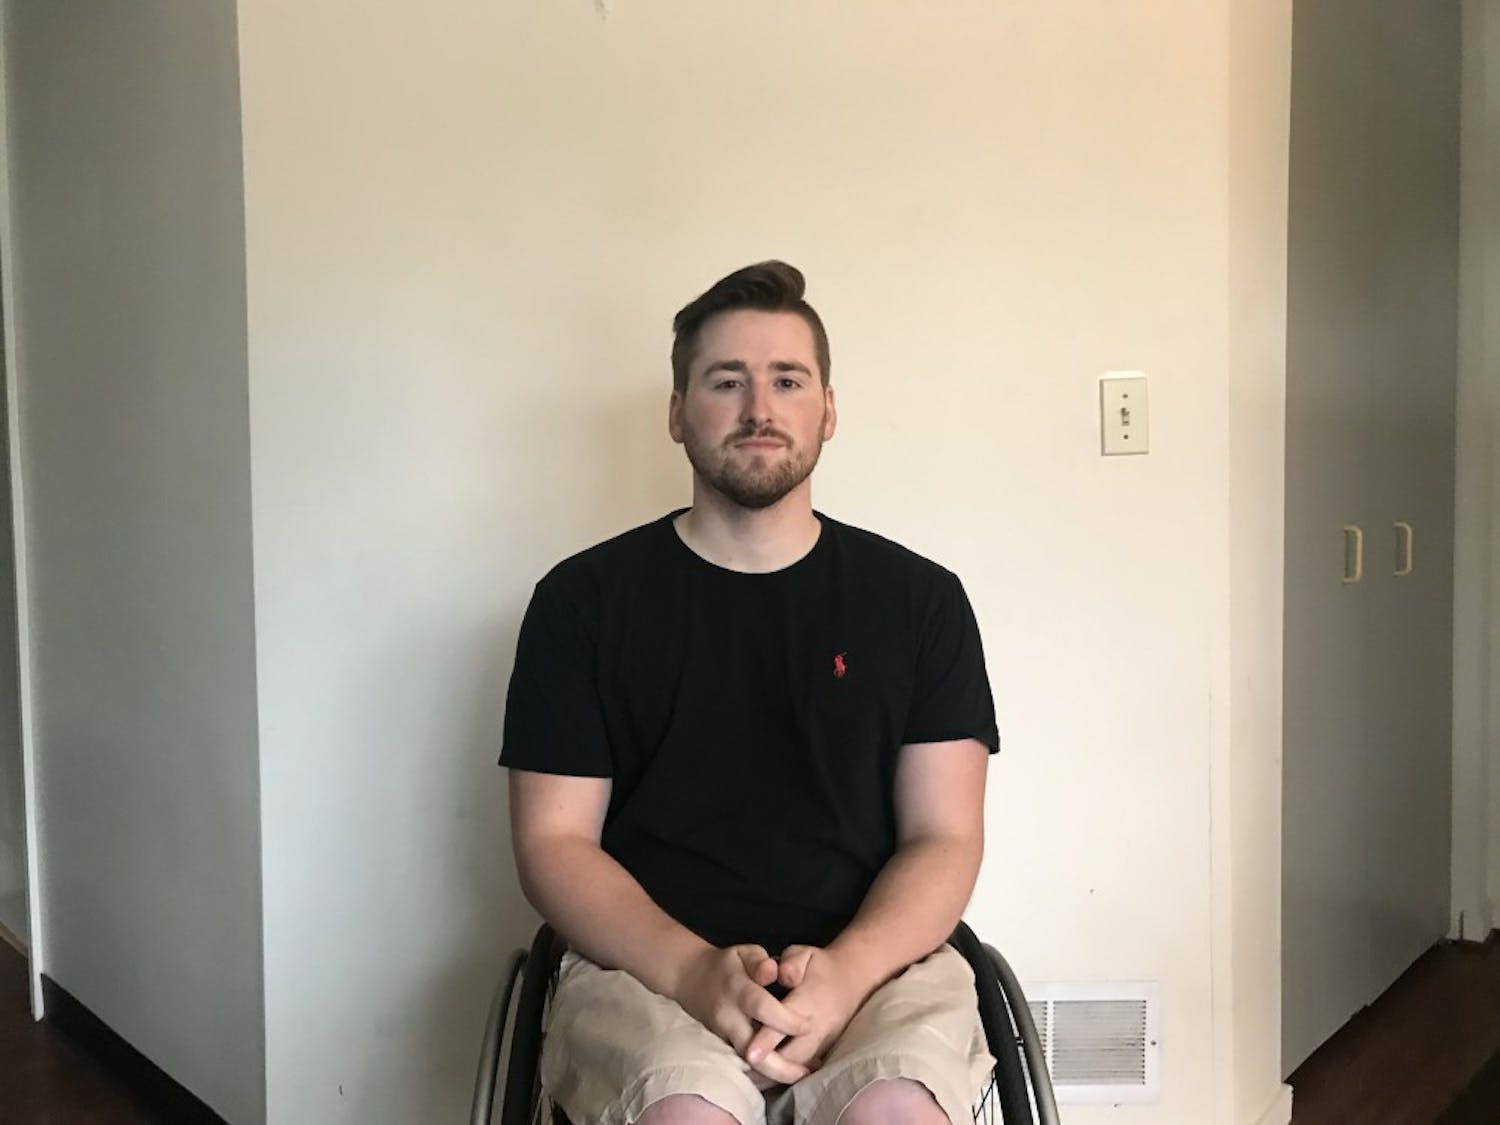 Graduate Student Connor Gow didn't have an accessible table in Capen Hall where he had class last semester.